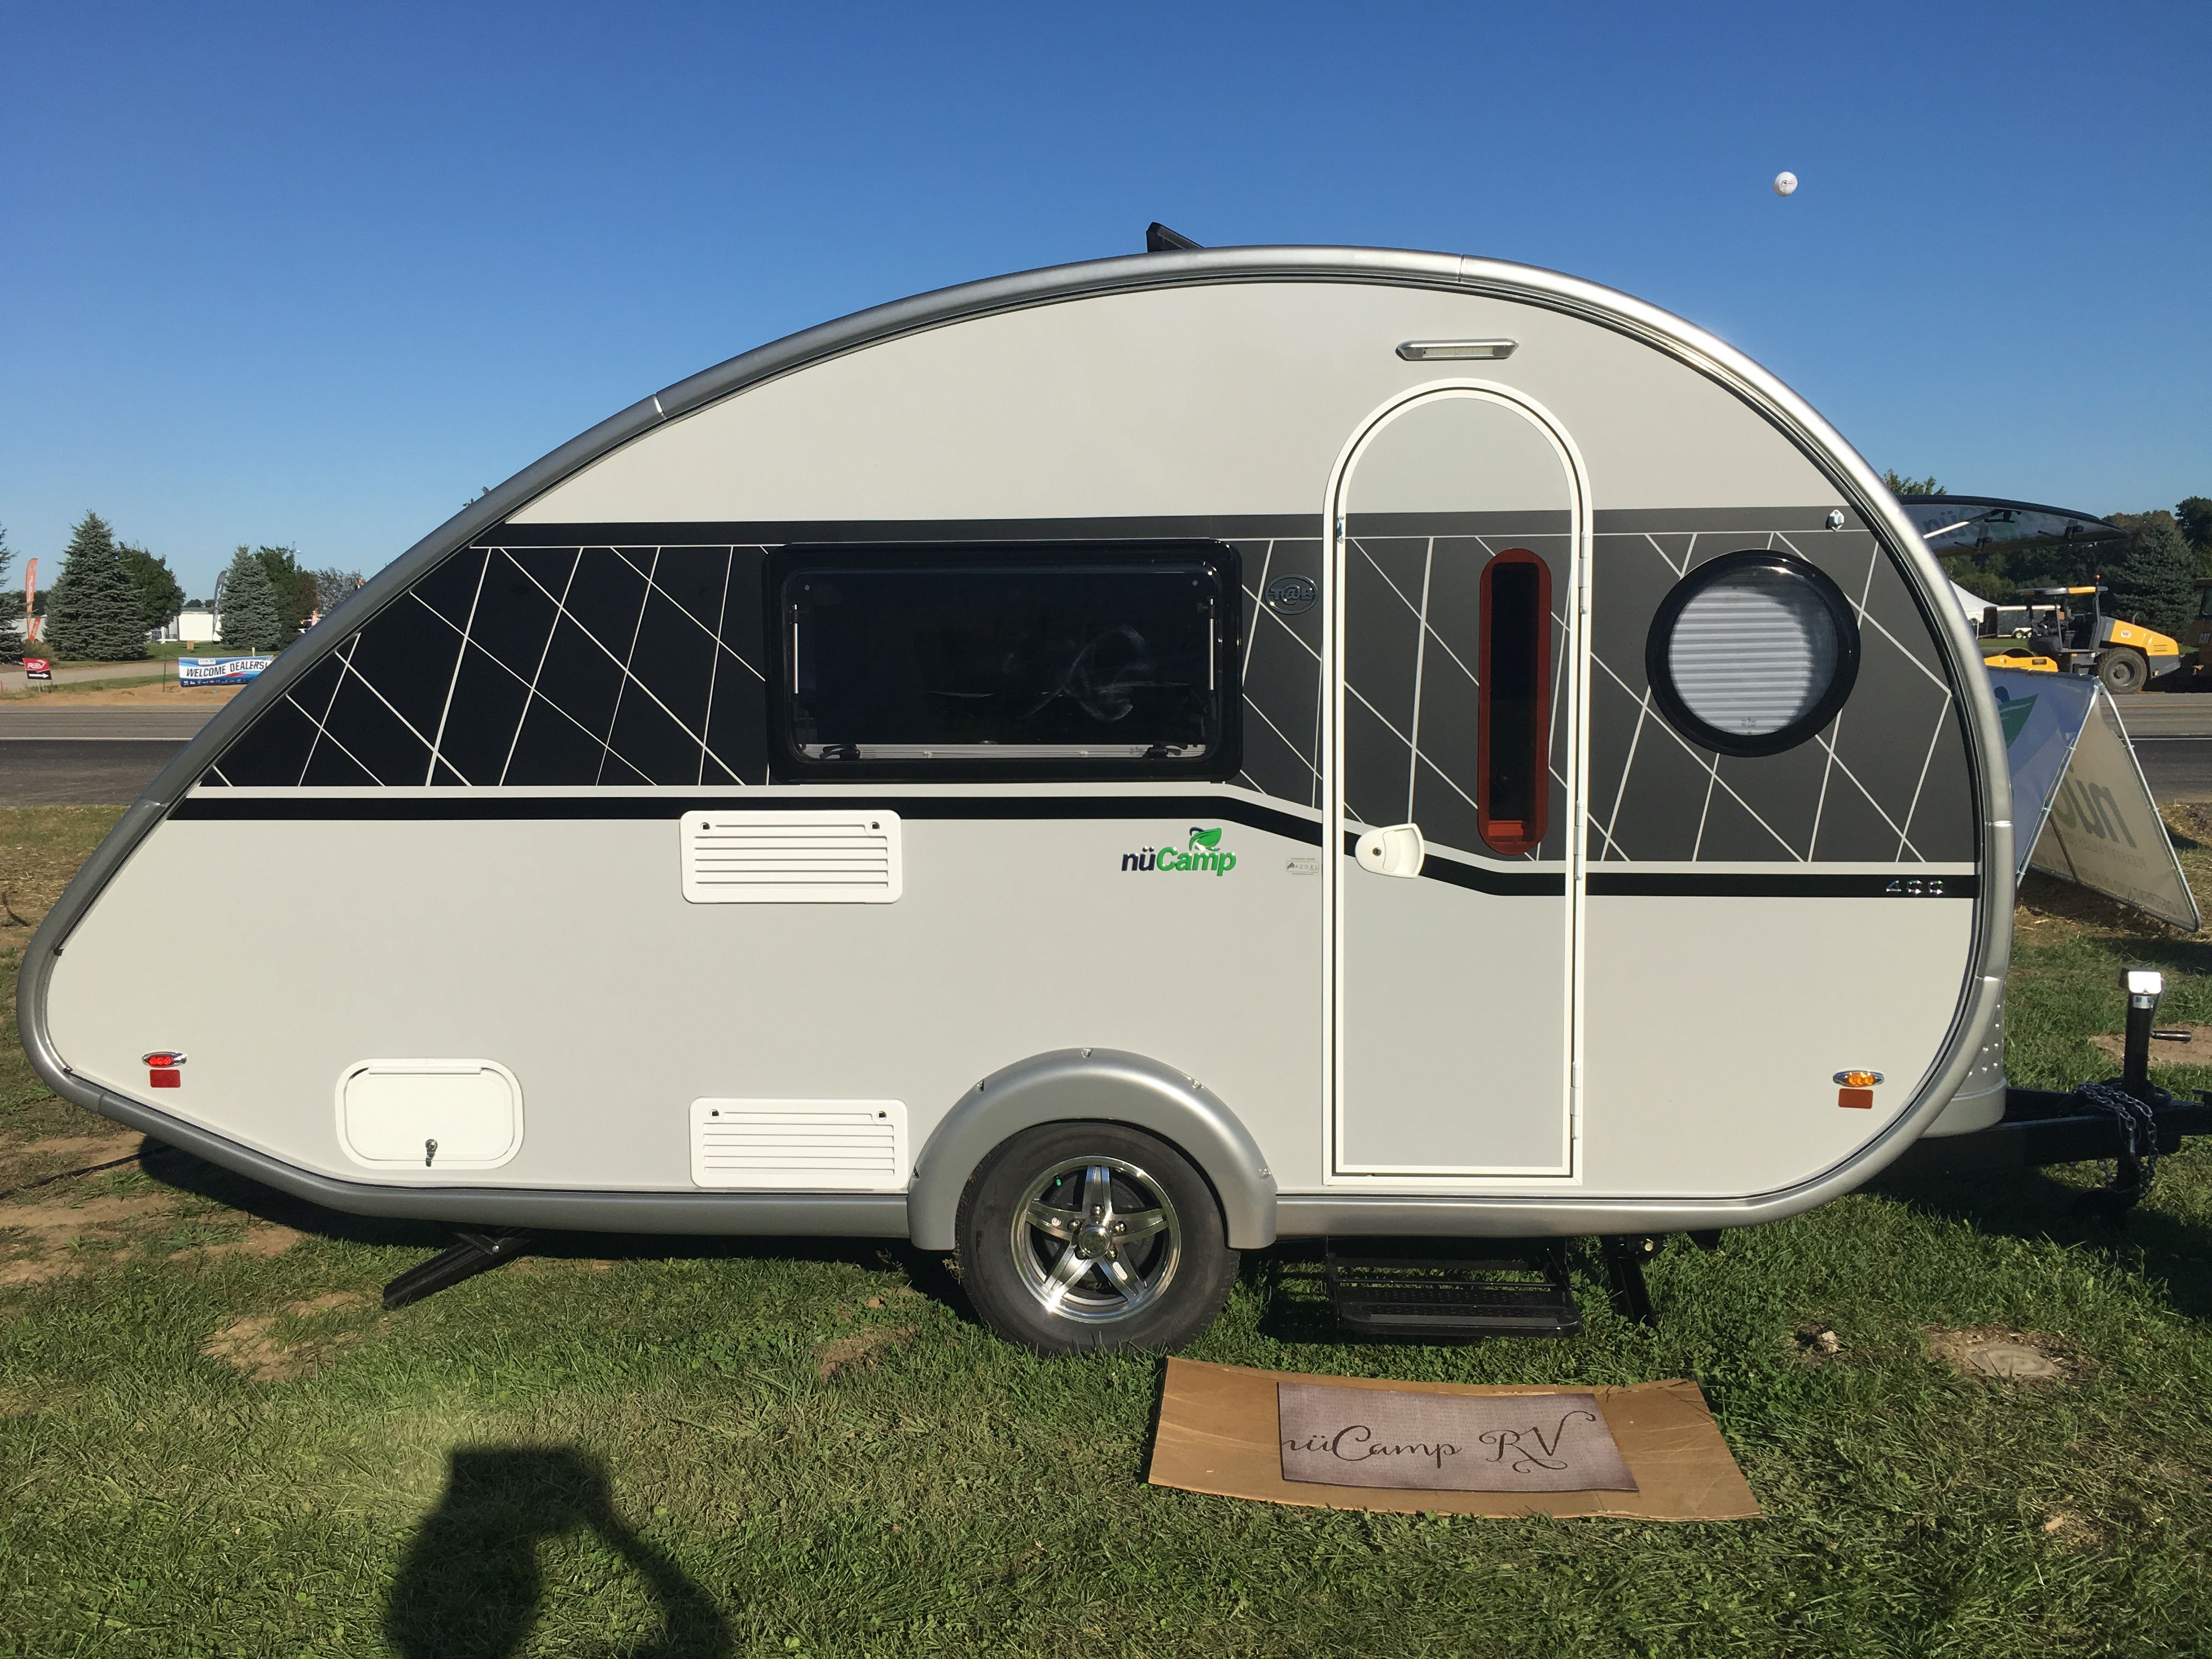 NuCamp RV debuted the prototype for the